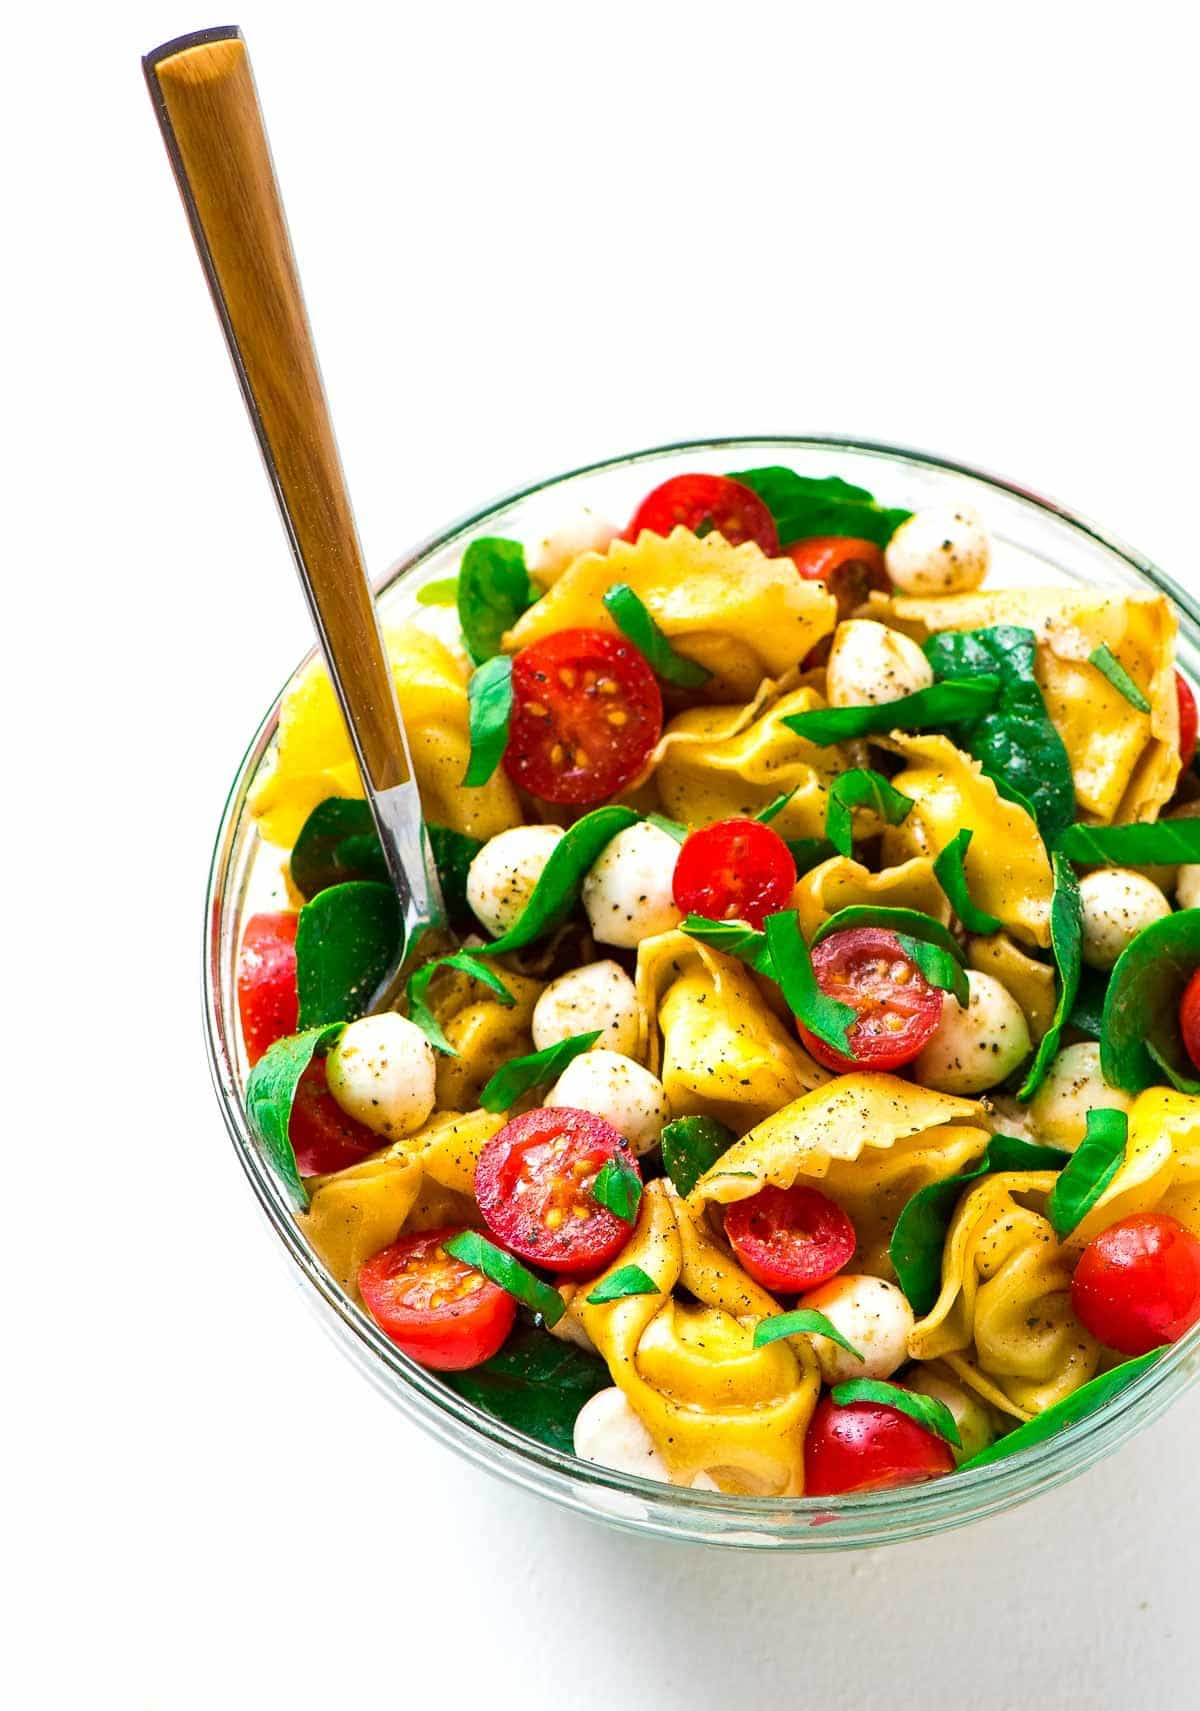 Caprese Pasta Salad recipe with balsamic and tortellini. Simple and delicious! Recipe at wellplated.com | @wellplated